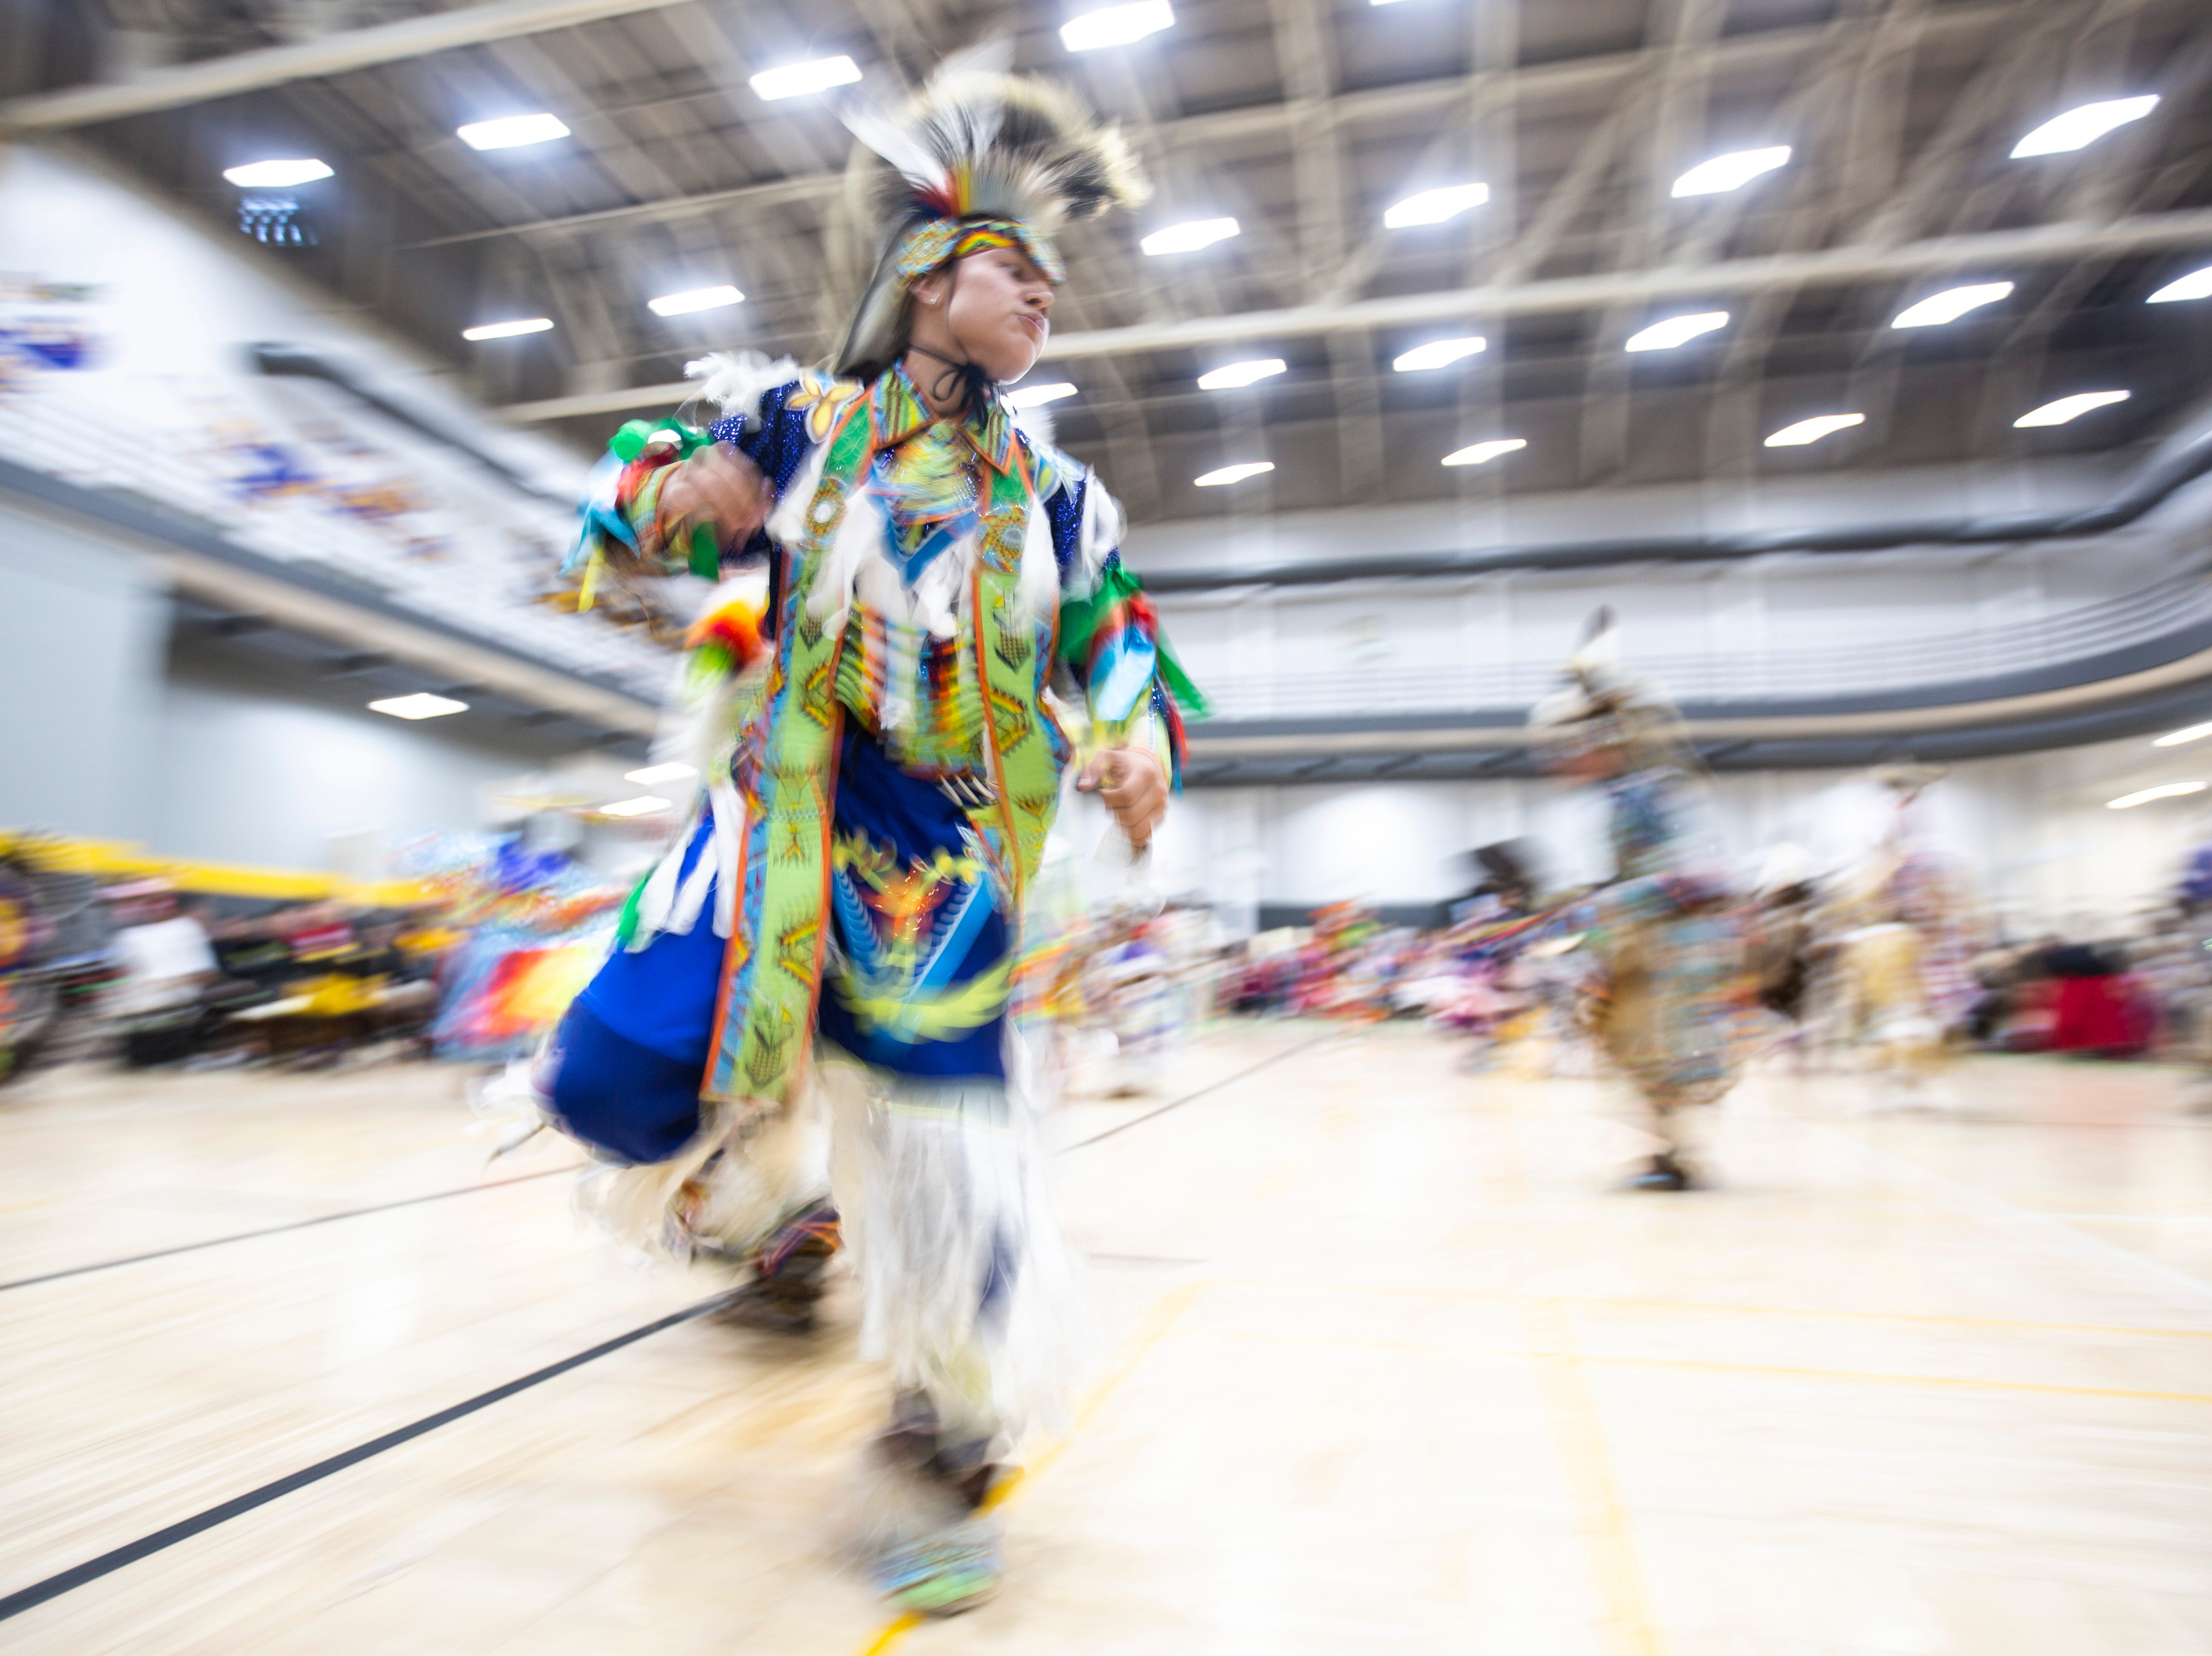 Tyrin Lasley, 17, of the Meskwaki Indian settlement in Tama, Iowa, dances during the 25th annual University of Iowa powwow, Saturday, April 20, 2019, at the Field House on the University of Iowa campus in Iowa City, Iowa. Lasley has attended every powwow with his family since he was born.